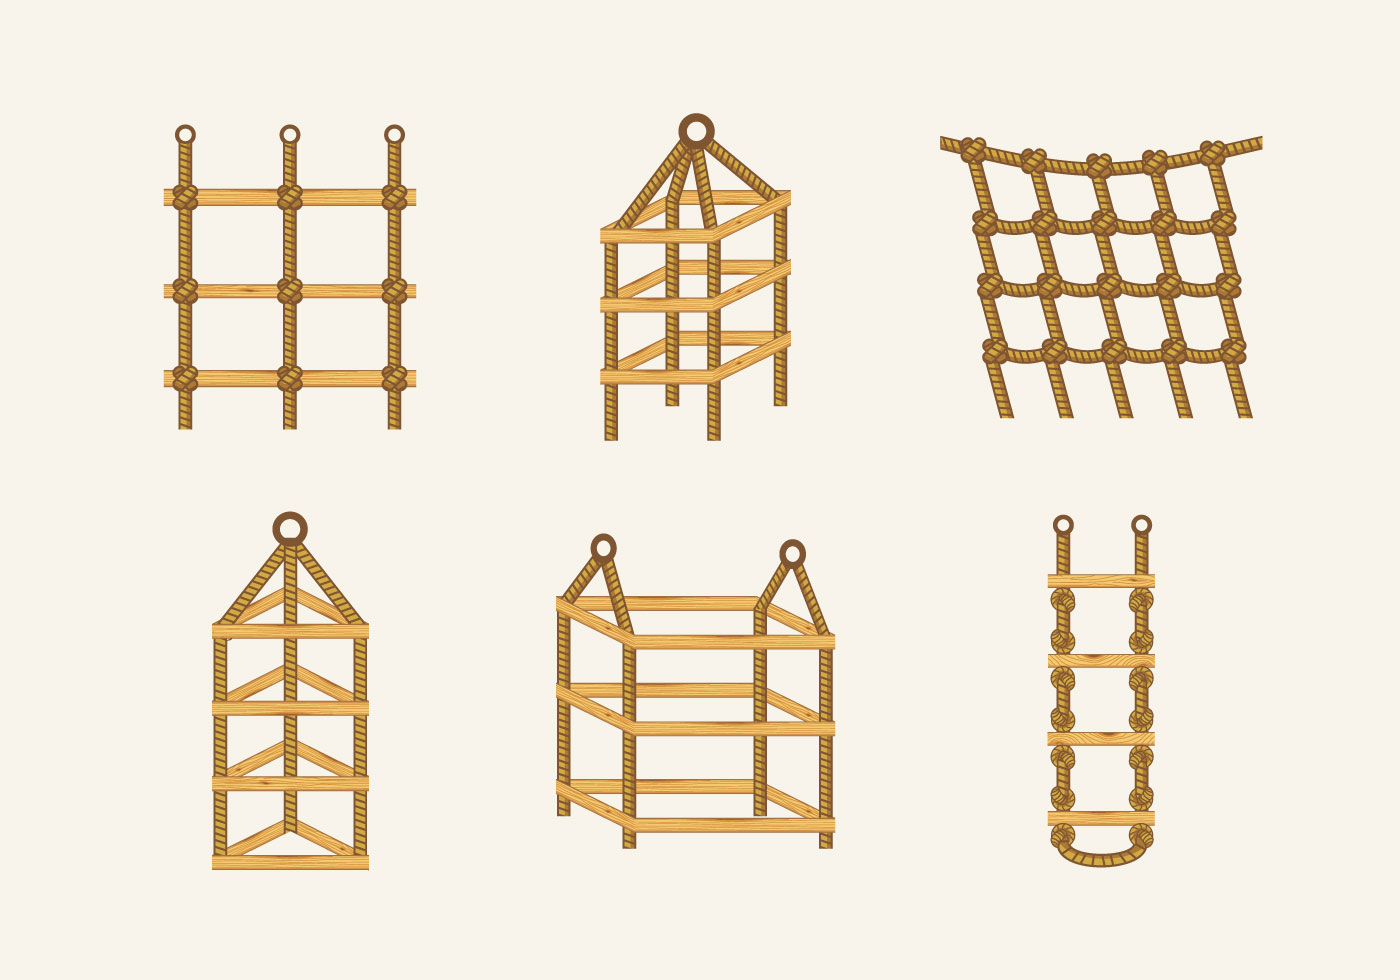 Beau Rope Ladder Knot Wood Stairs Vector Stock   Download Free Vector Art, Stock  Graphics U0026 Images